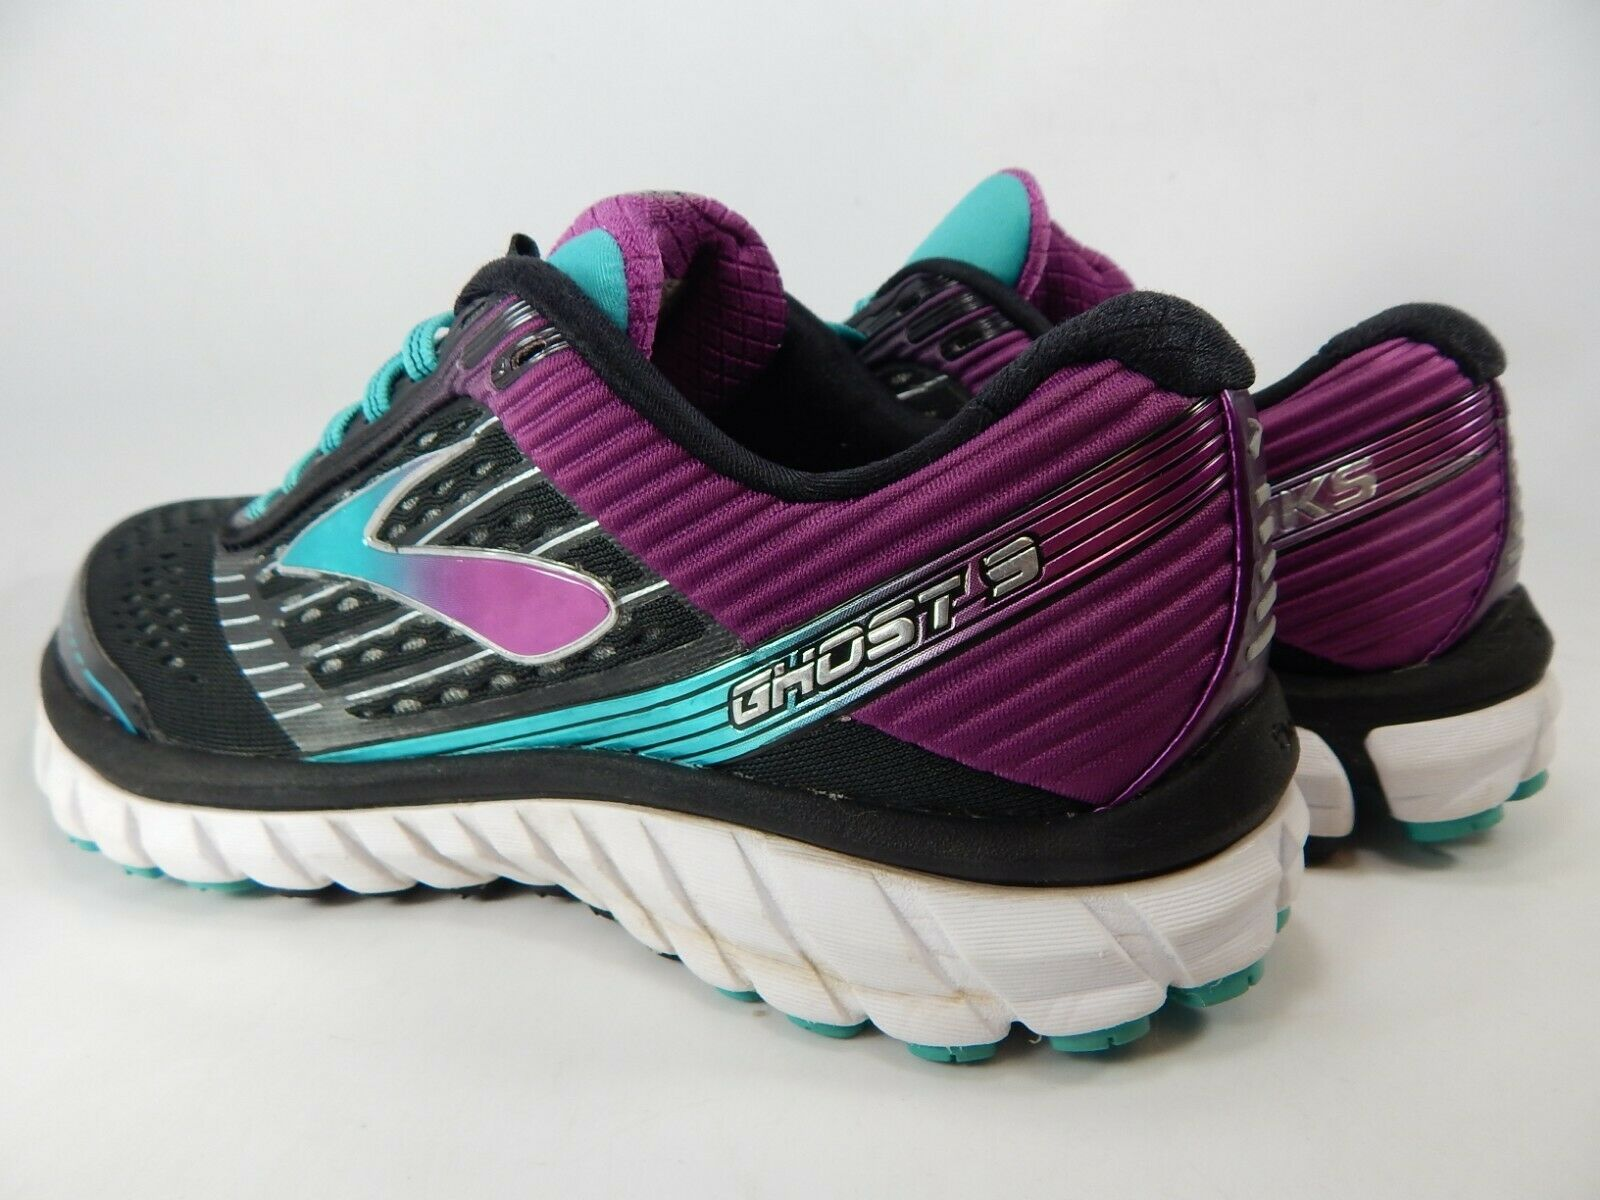 Brooks Ghost 9 Size US 10 M (B) EU 42 Women's Running Shoes Black 1202251B092 image 4